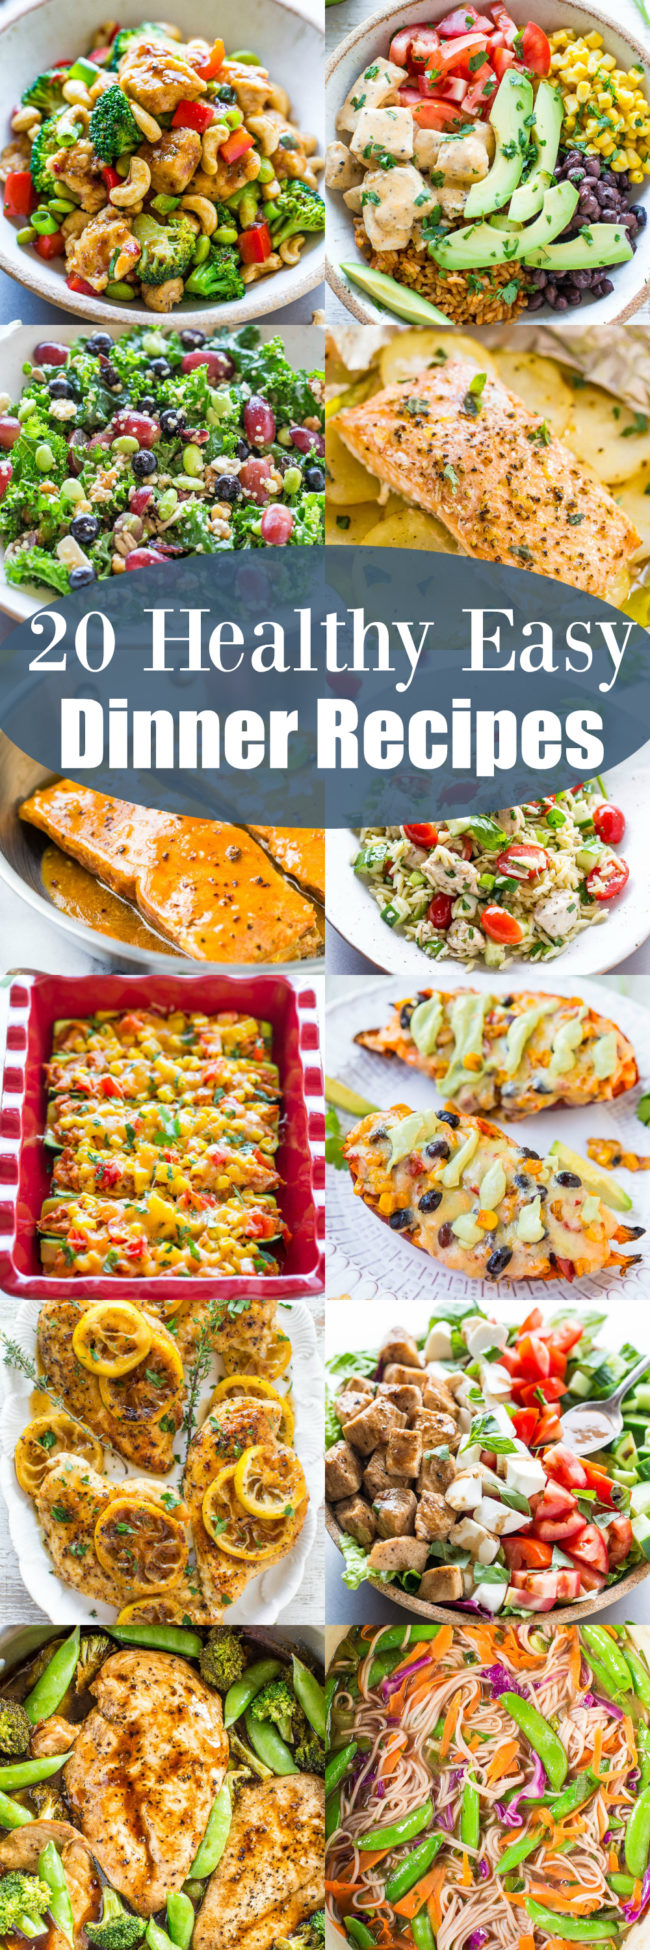 20 Healthy Easy Dinner Recipes - Looking for healthy, easy recipes that taste GREAT and everyone in the family will love? Plenty of options here that you'll want to put into your regular rotation!!